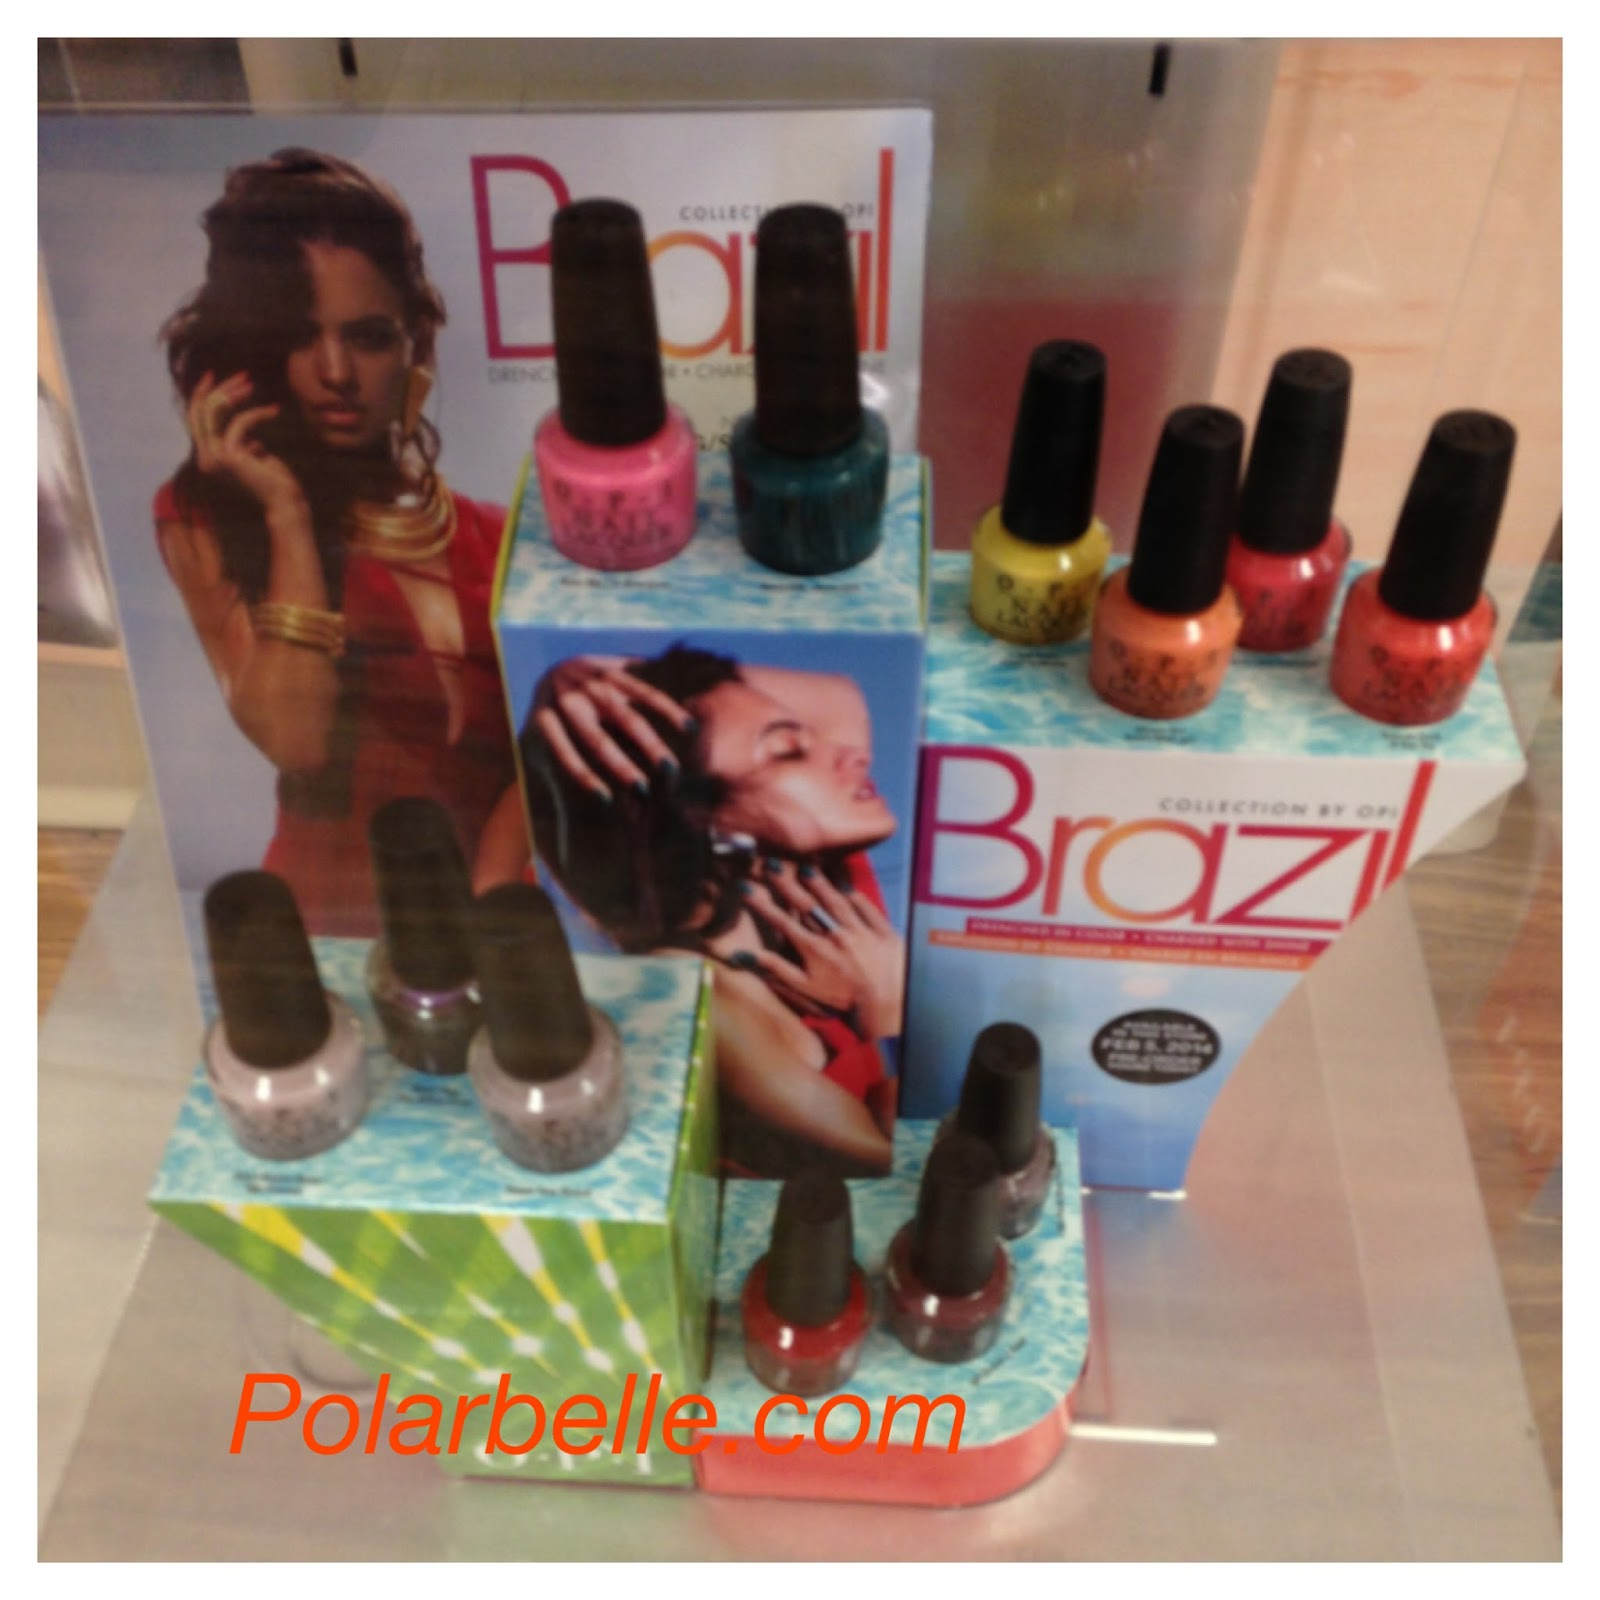 OPI Brazil nail polish collection display, swatches, Spring 2014